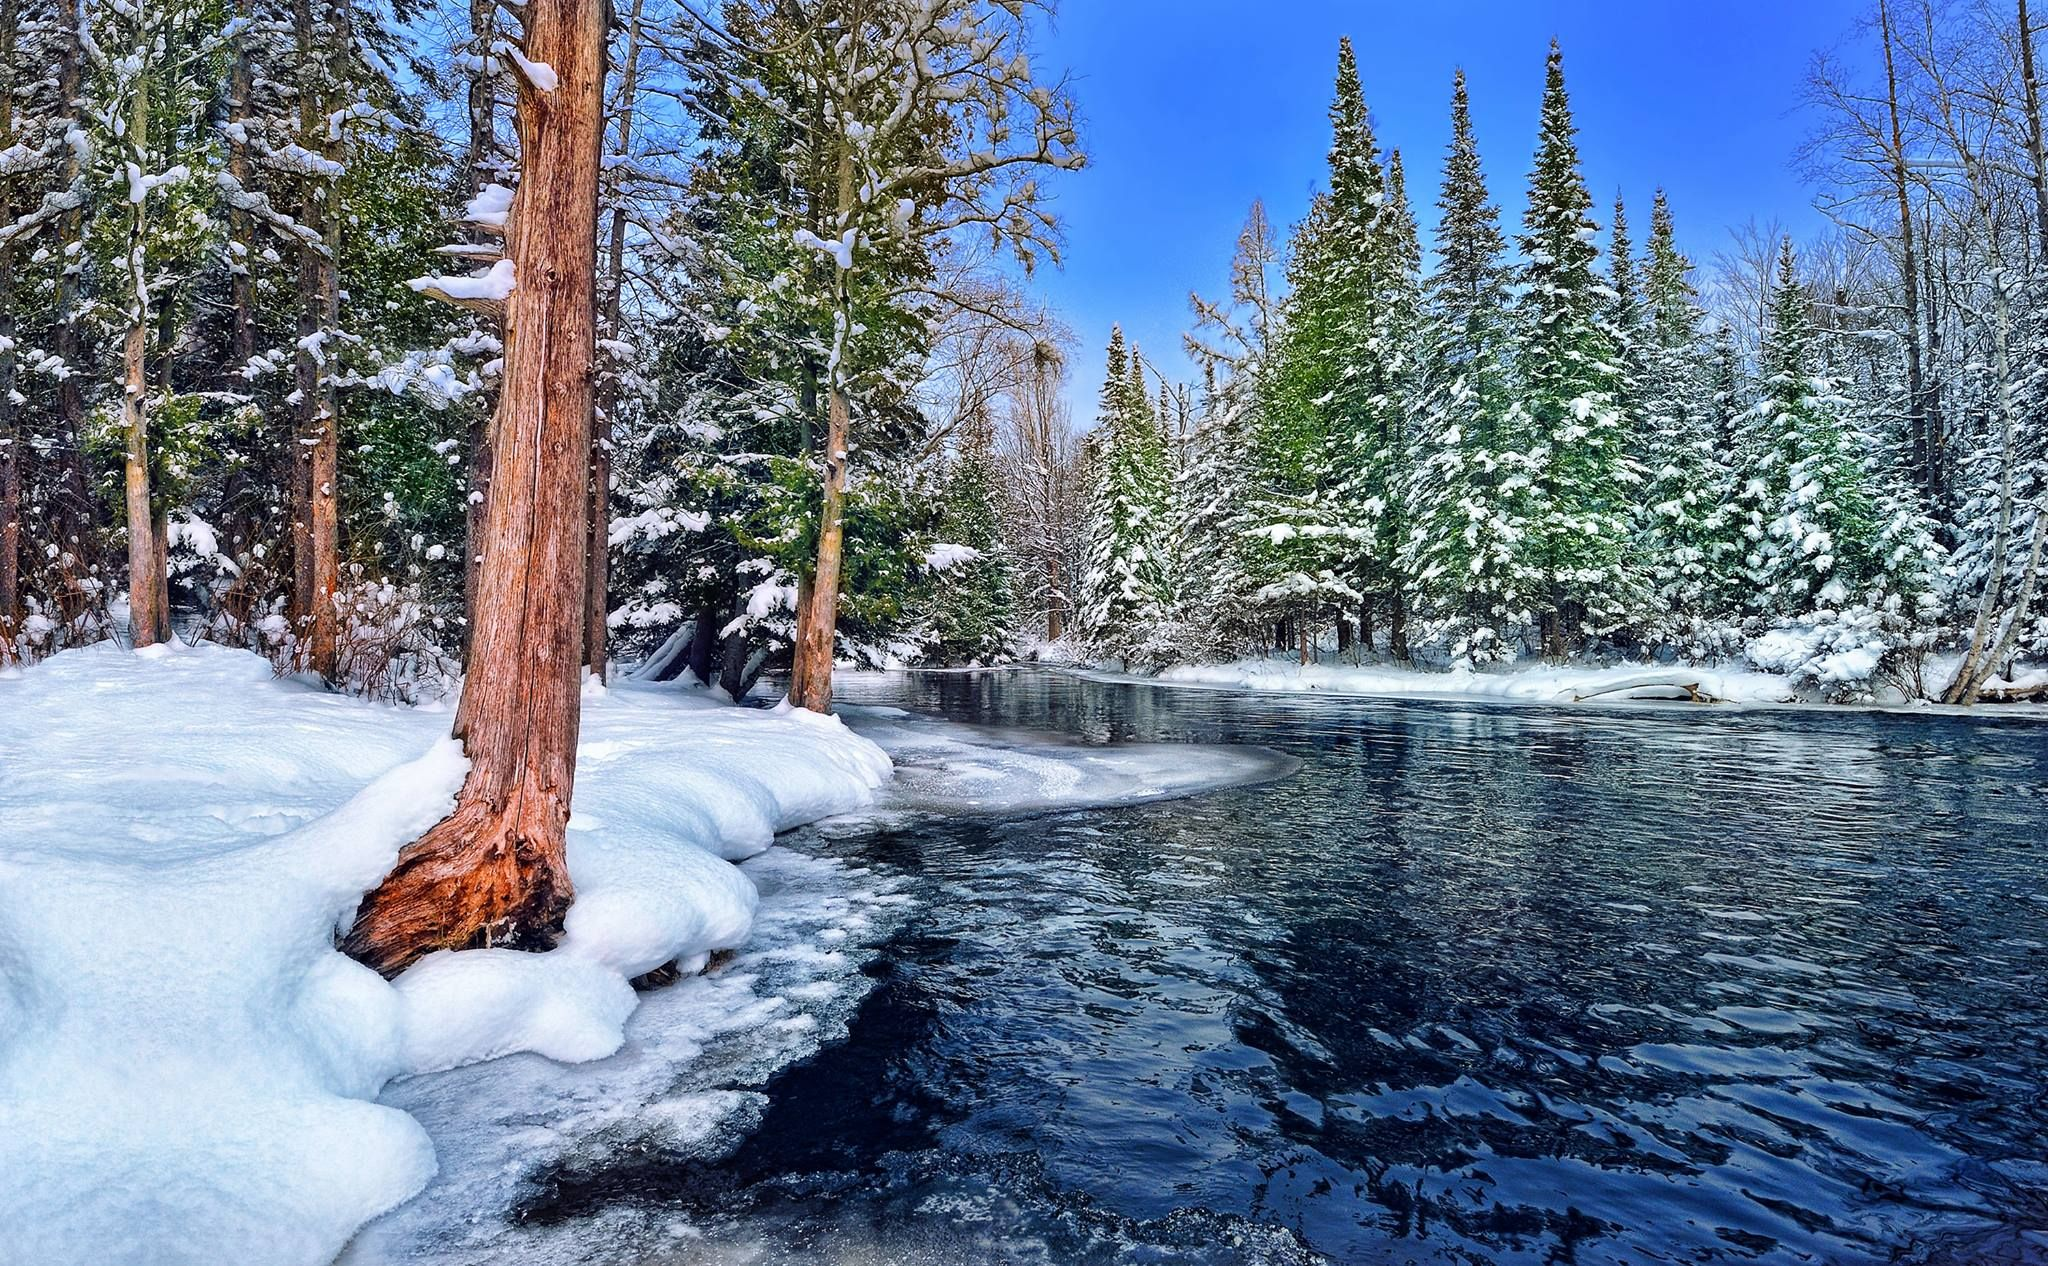 Beautiful Picture Of The Jordan River In Michigan Winter Time Thank You Pure Michigan Pure Michigan Michigan Tourism Michigan Travel